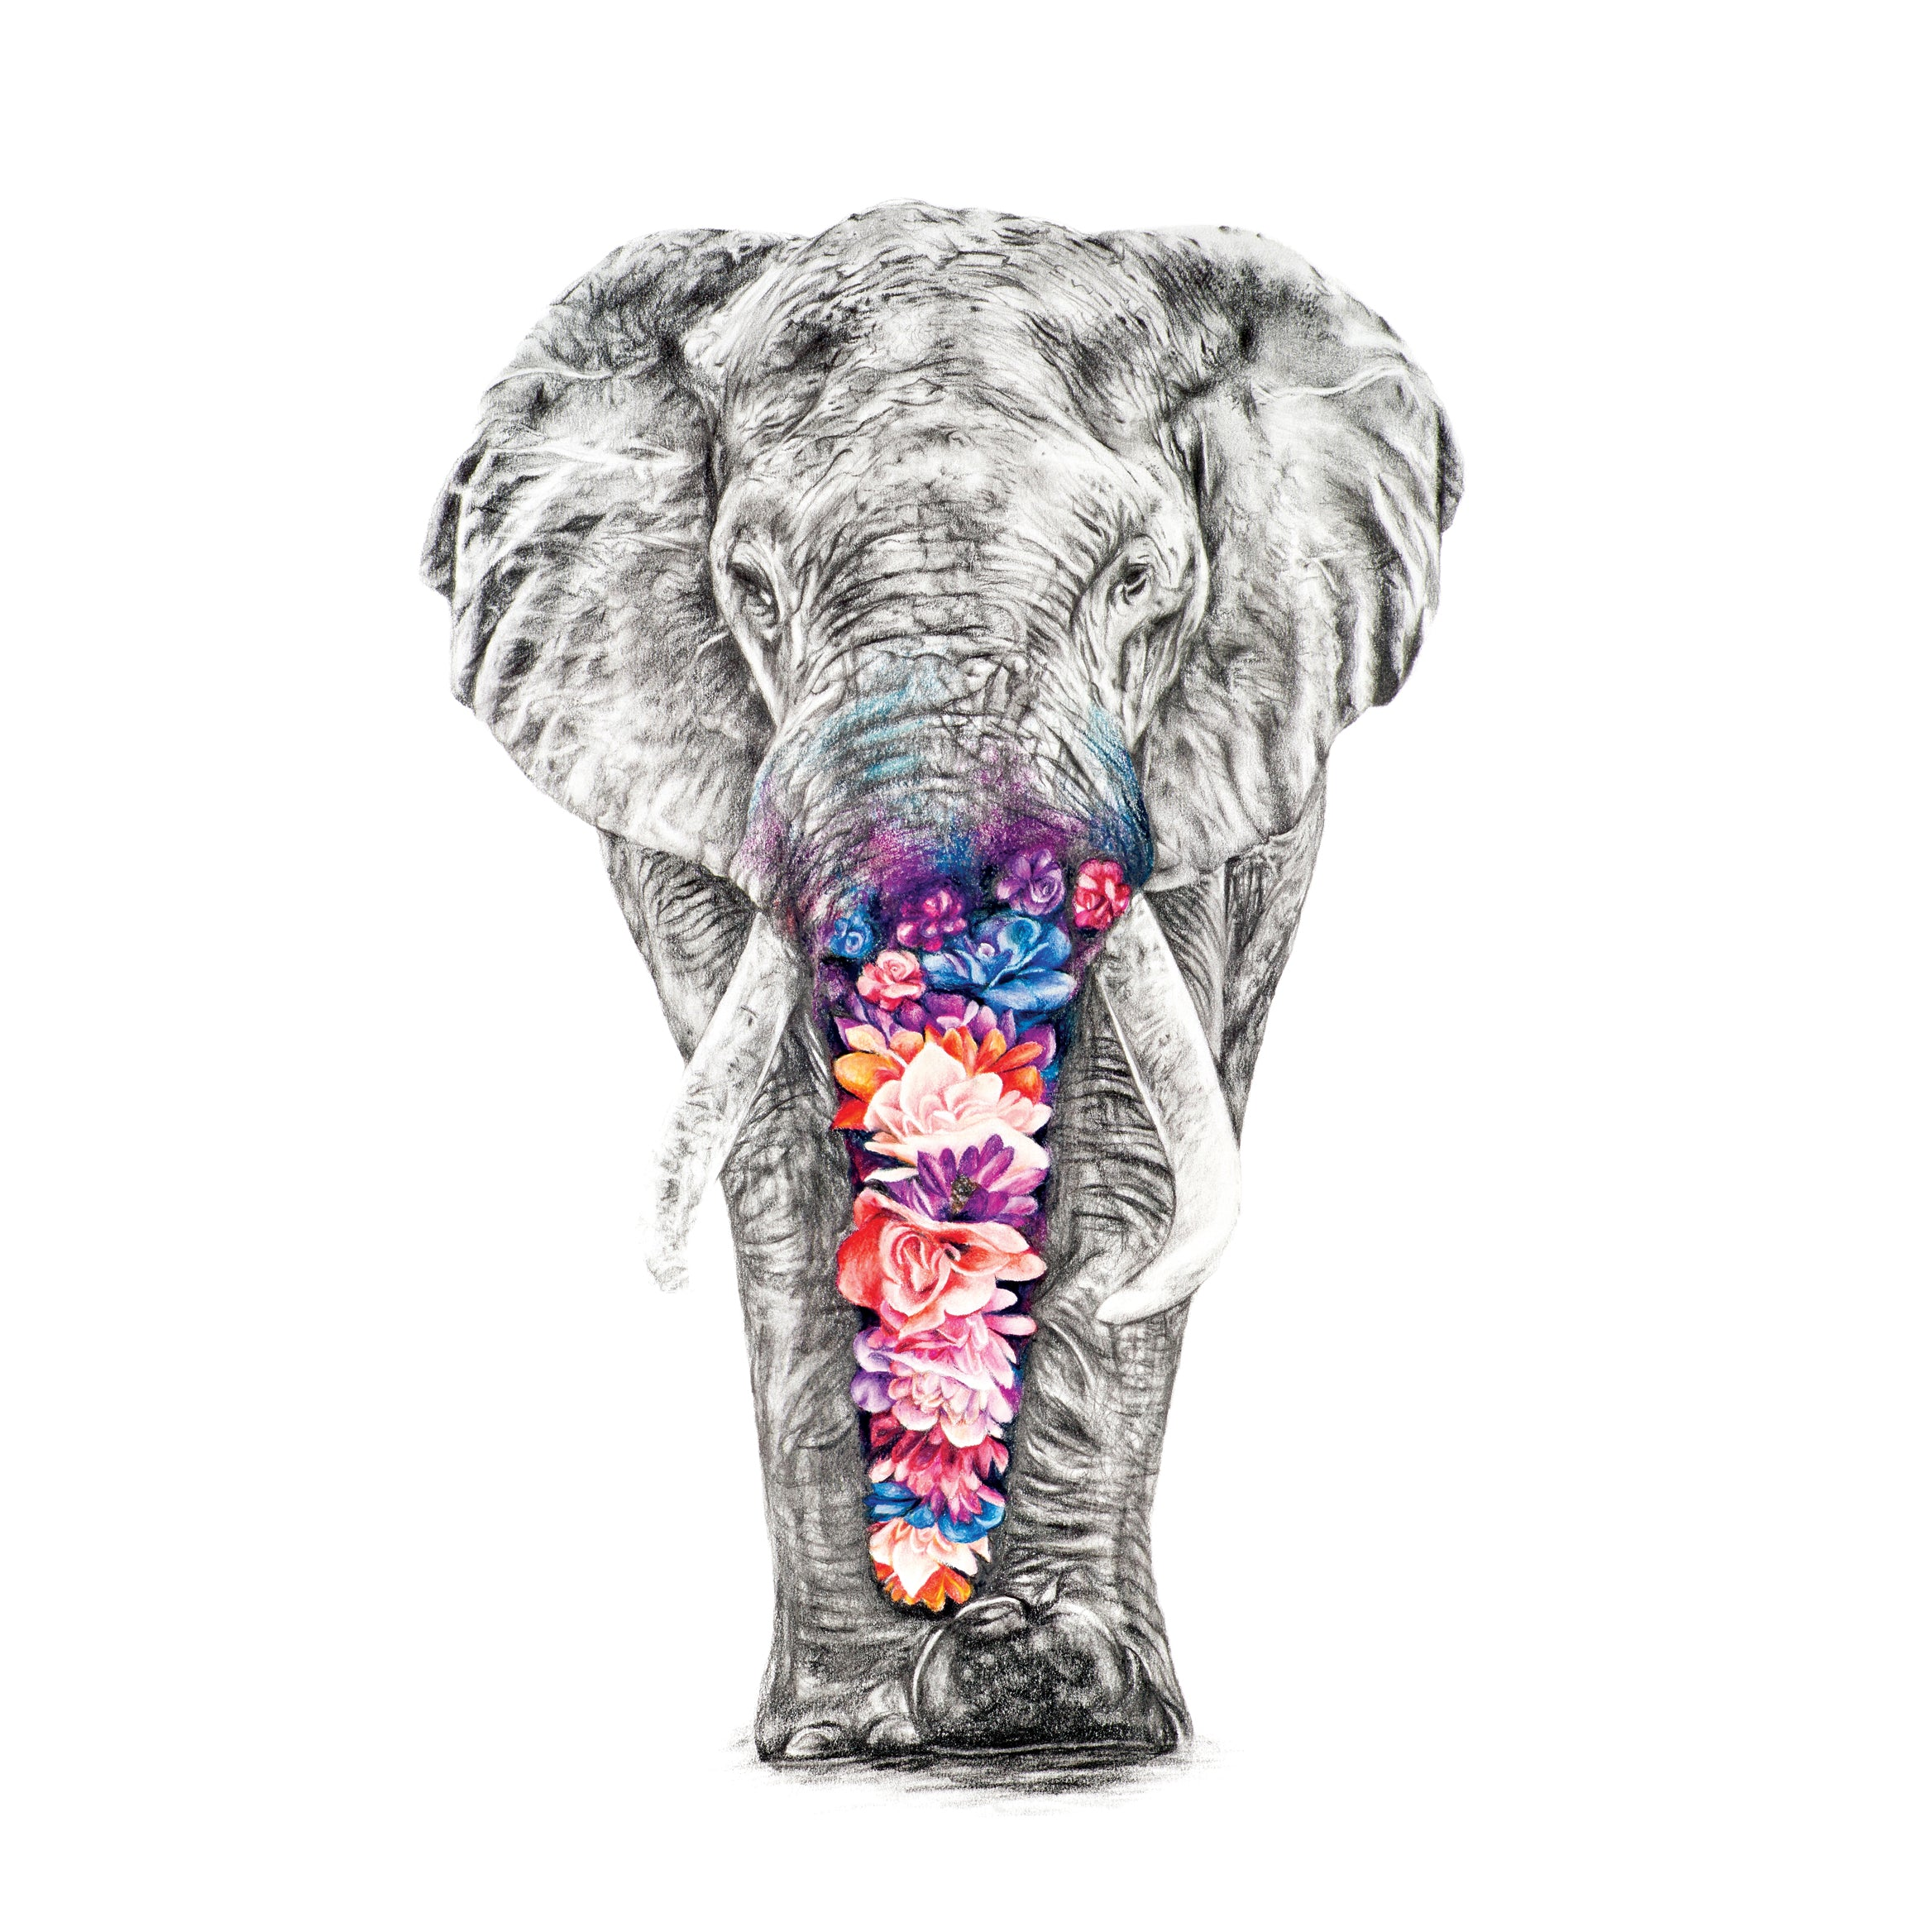 Effy the Elephant - Large Print